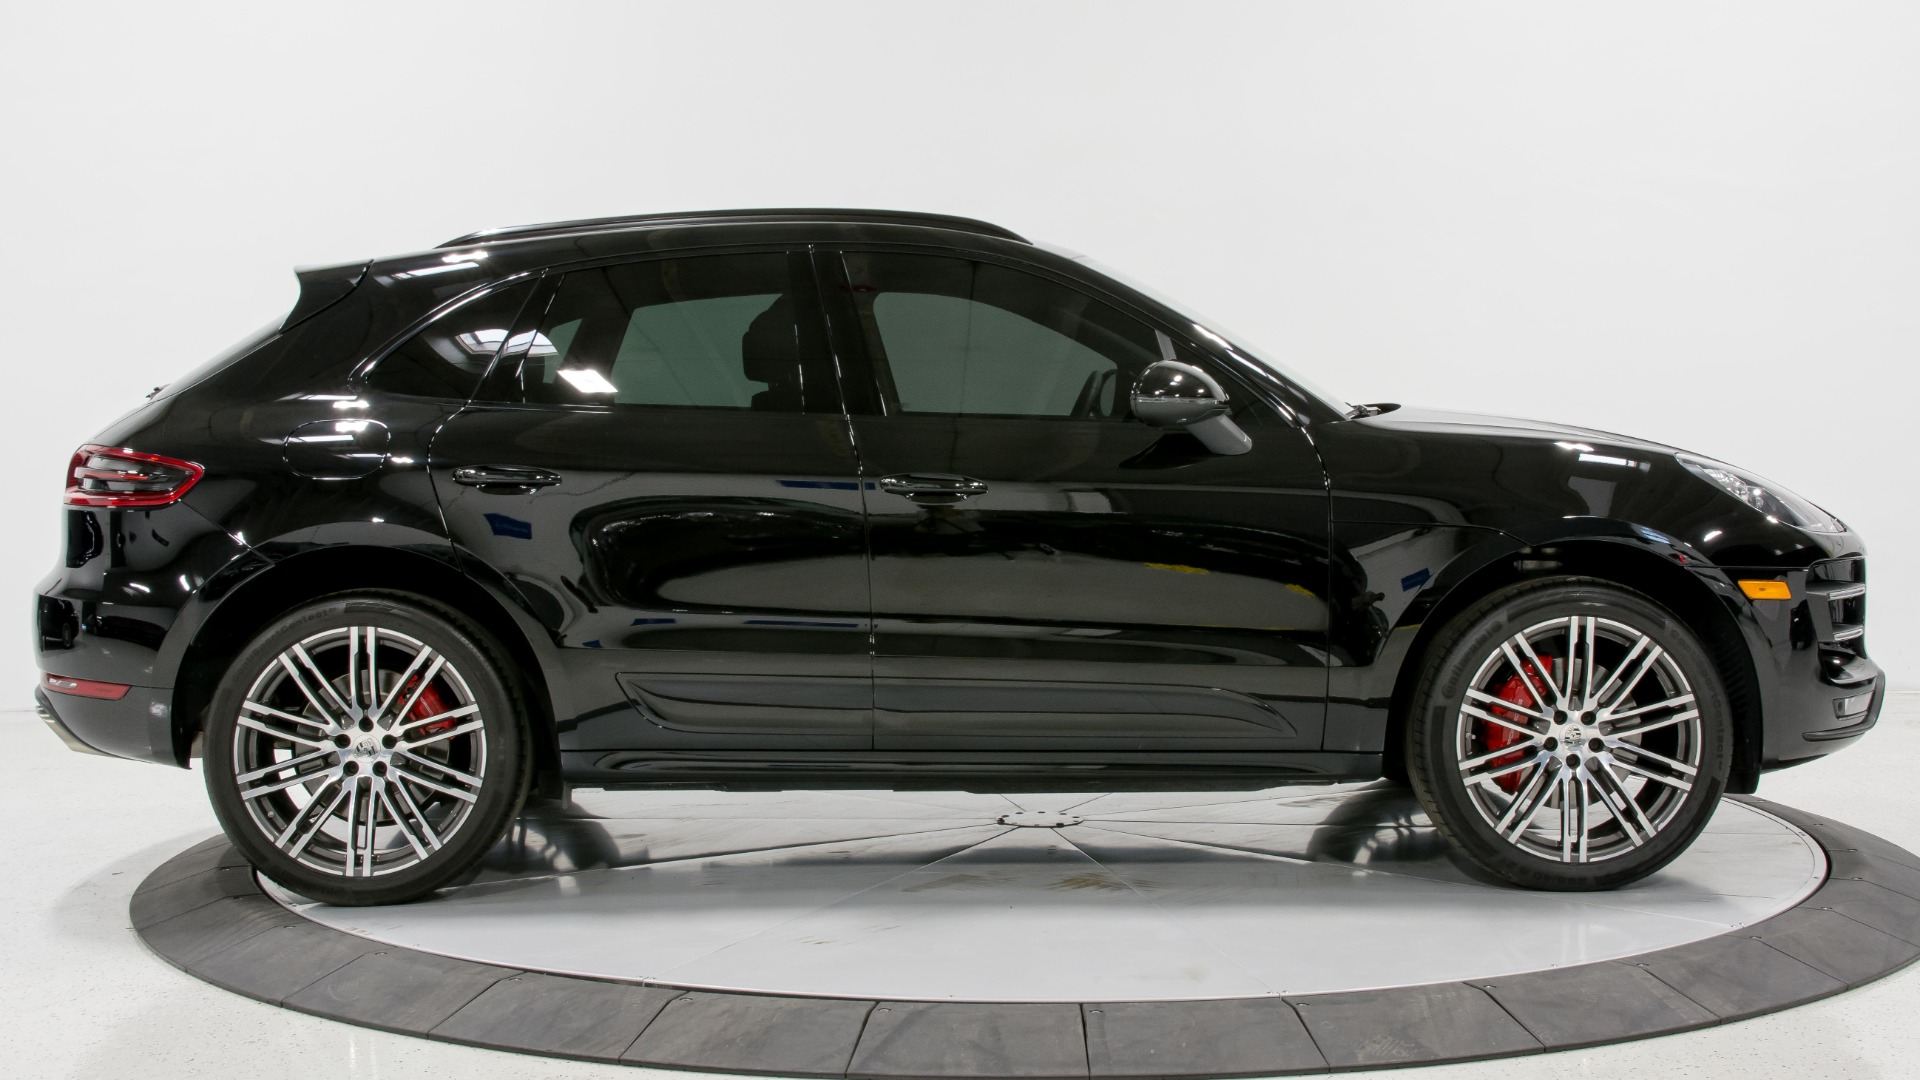 2016 Porsche Macan Turbo Stock for sale near Pompano Beach